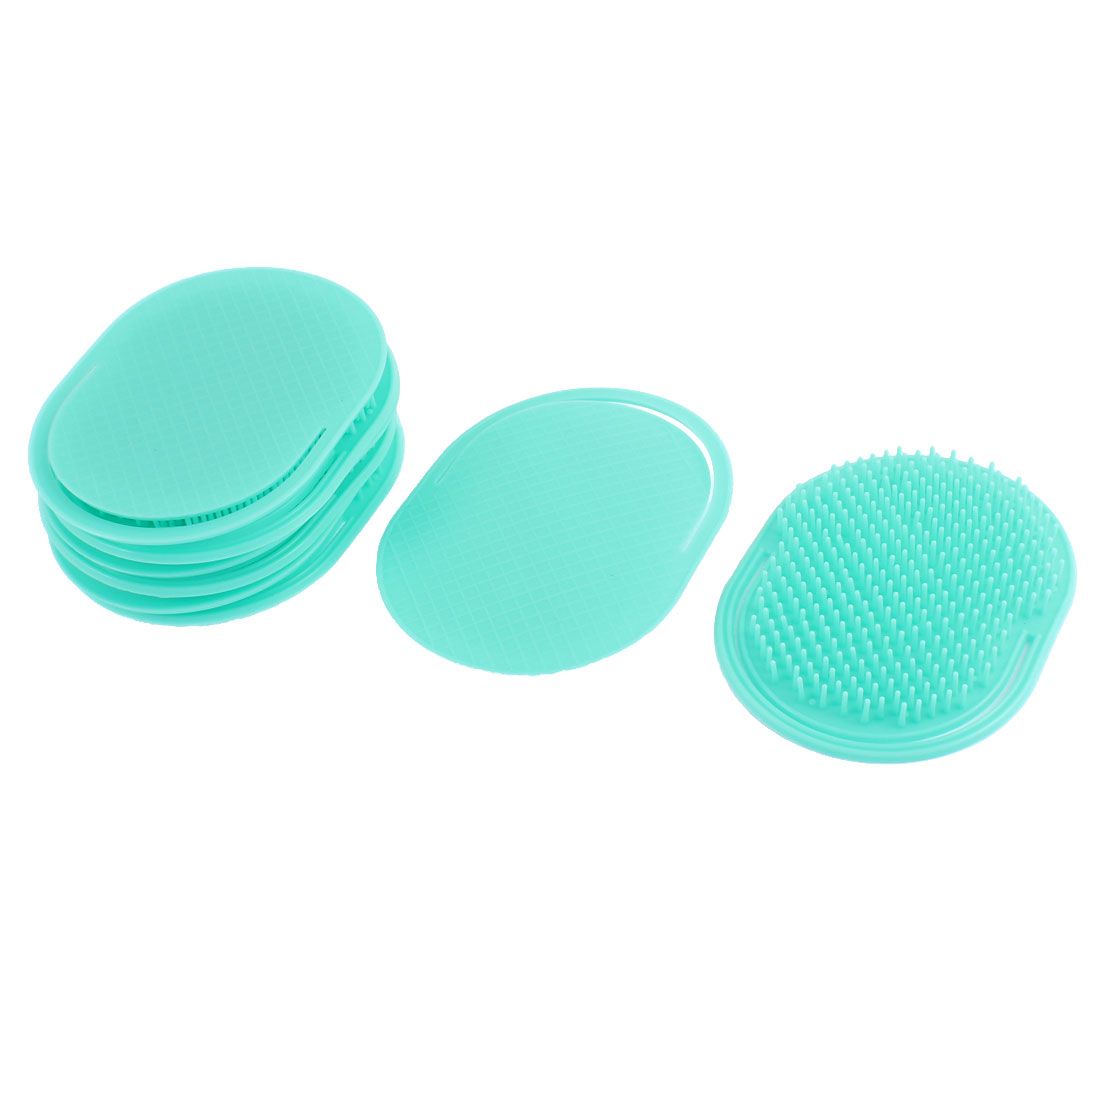 Hair Shampoo Scalp Massage Massager Brush Teal Green 8Pcs